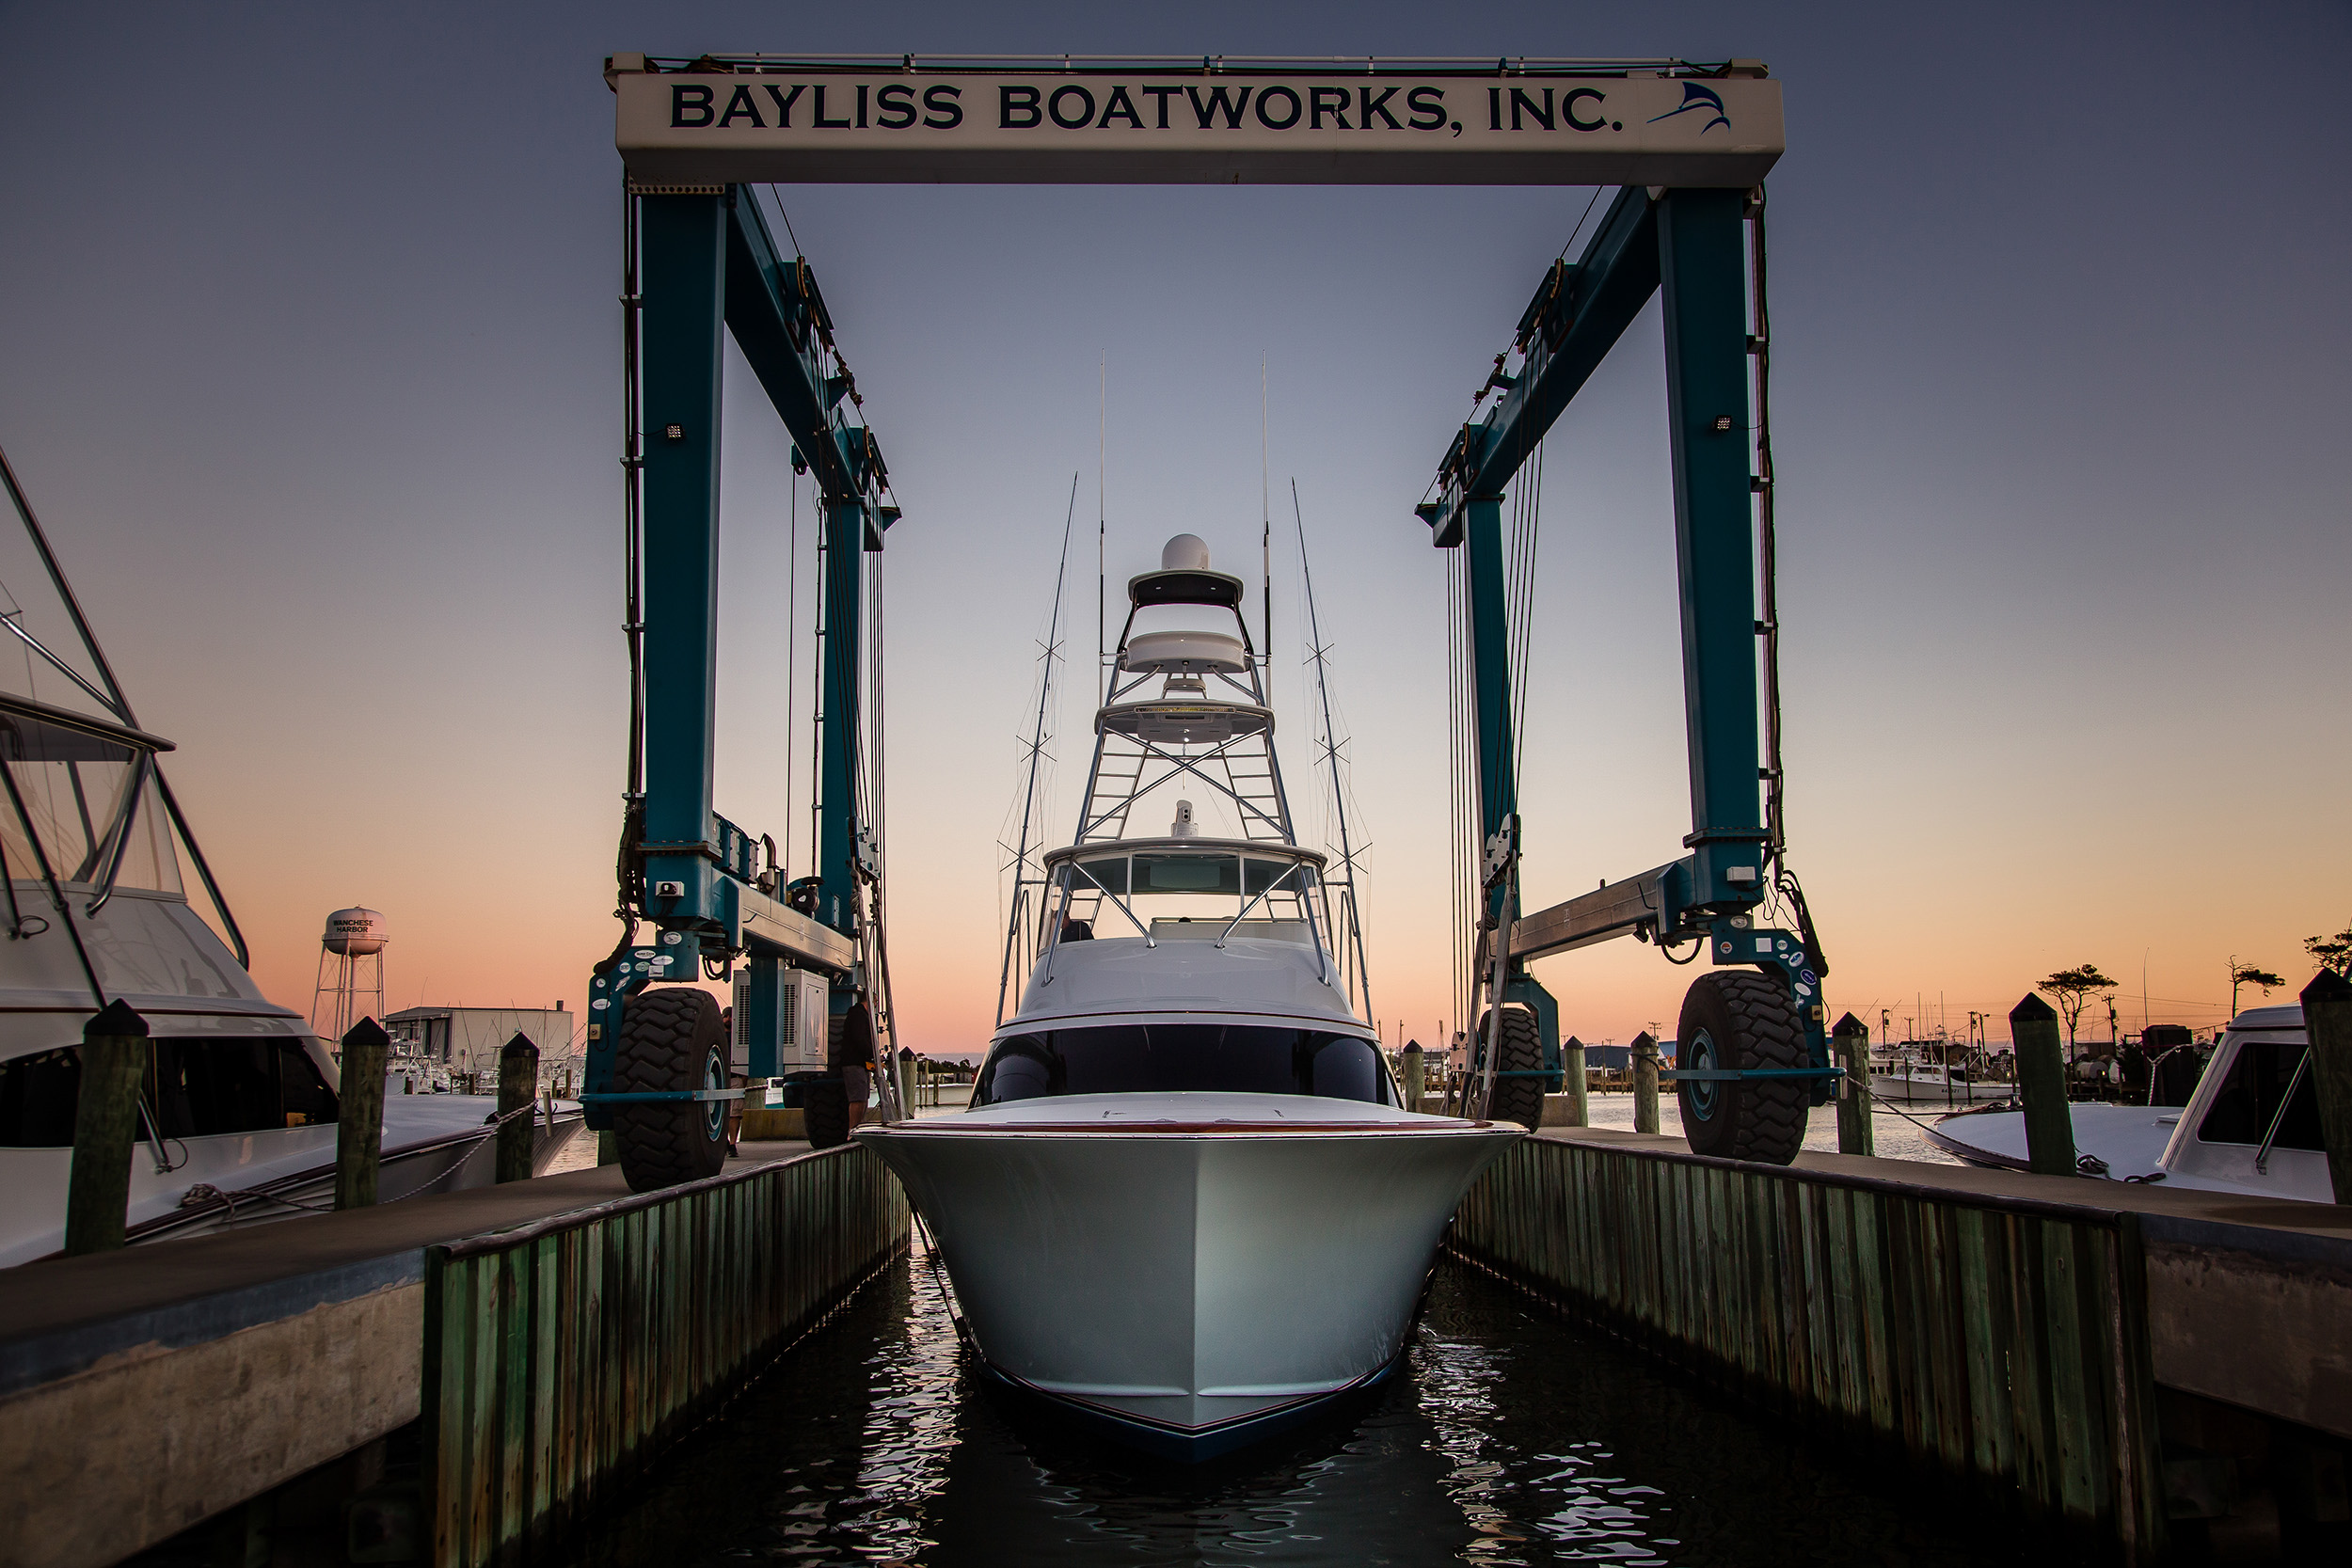 bayliss boatworks Seven Bow